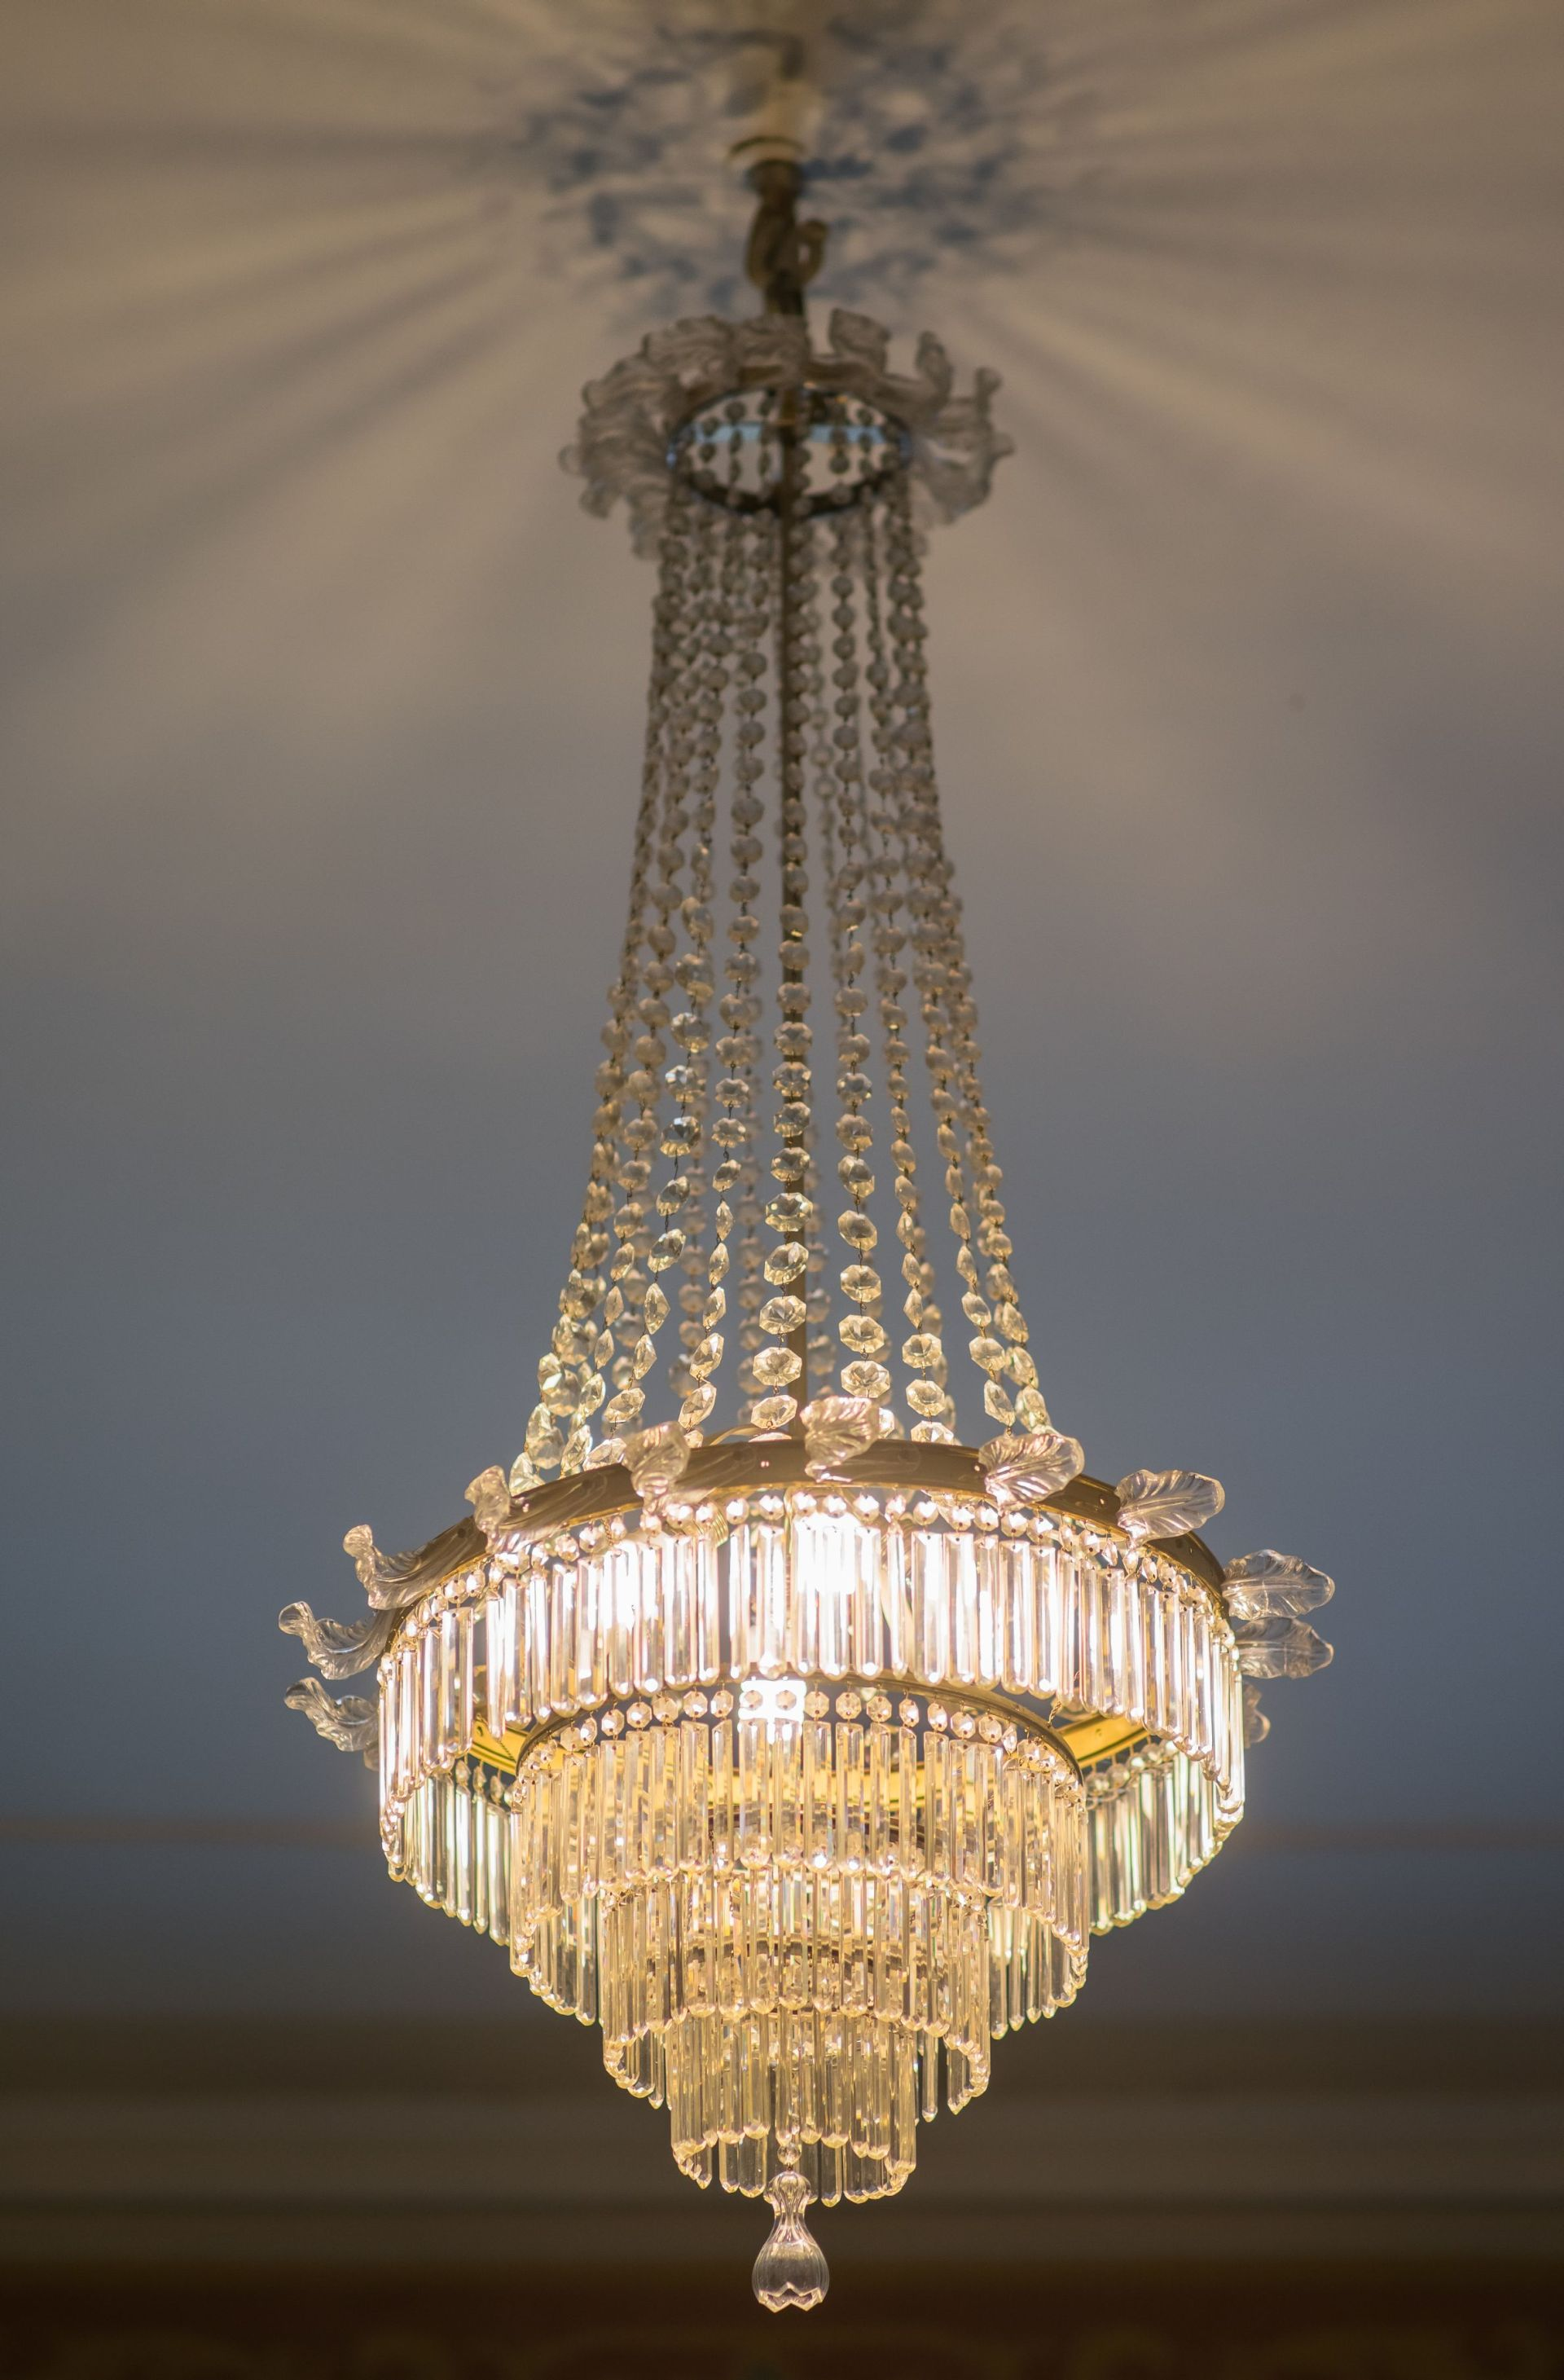 Chandelier, 1910–1929, Archdiocese of Vilnius. Photo by Povilas Jarmala, 2017